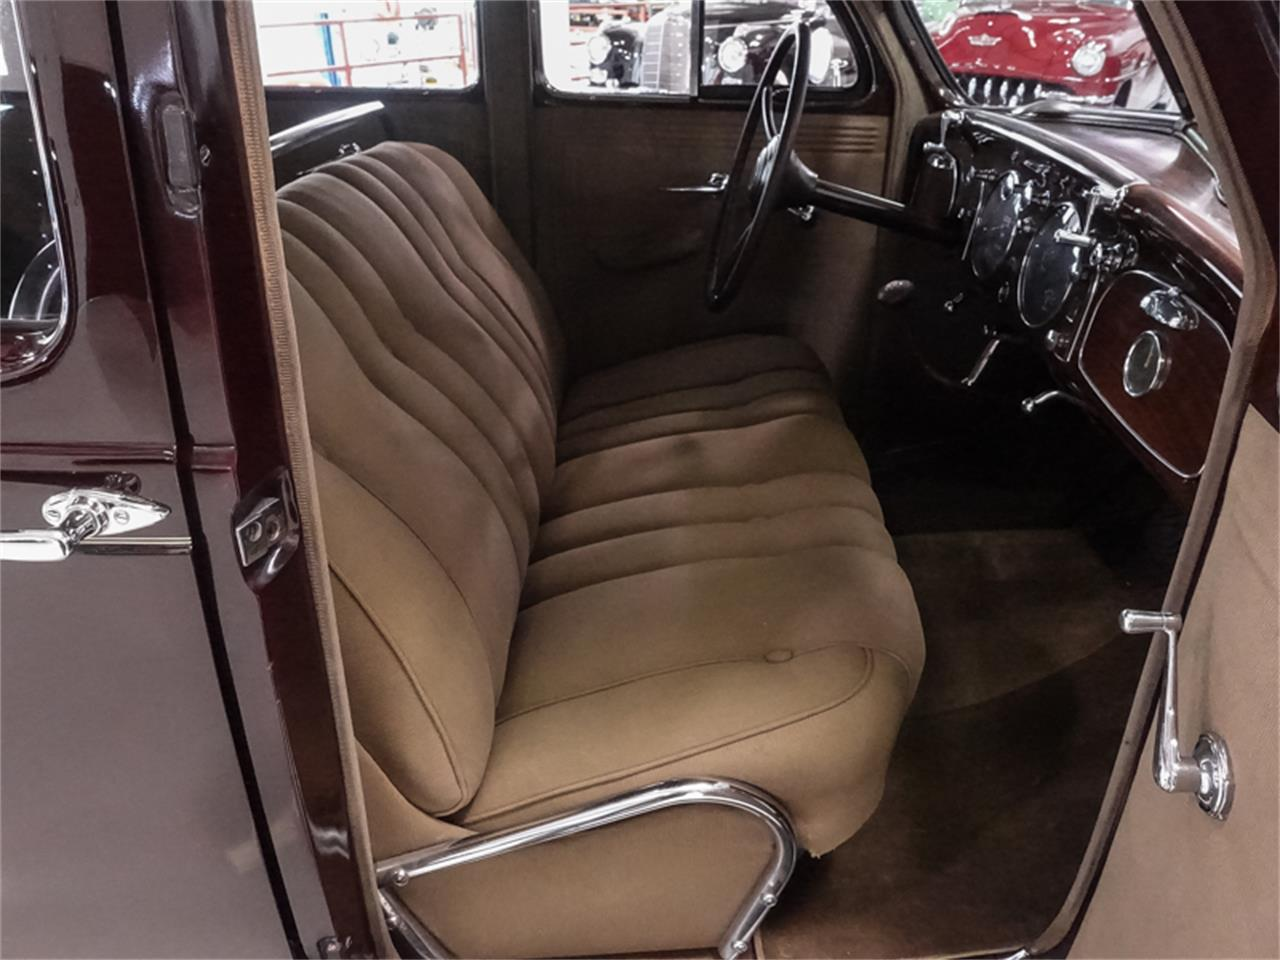 1935 Chrysler Airflow for sale in St. Louis, MO – photo 30